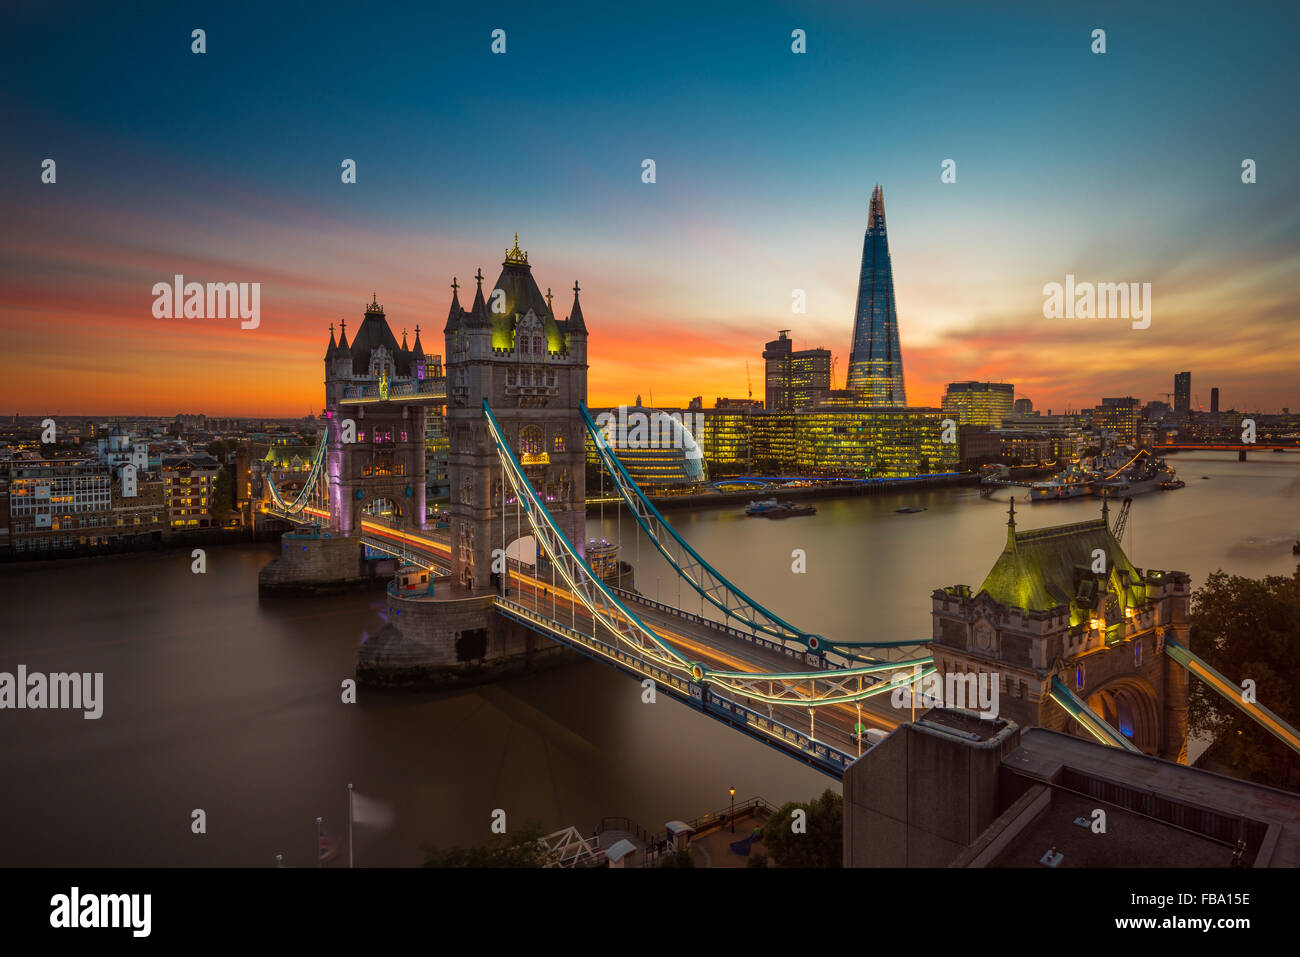 Twilight, Tower Bridge and the Shard at sunset - Stock Image